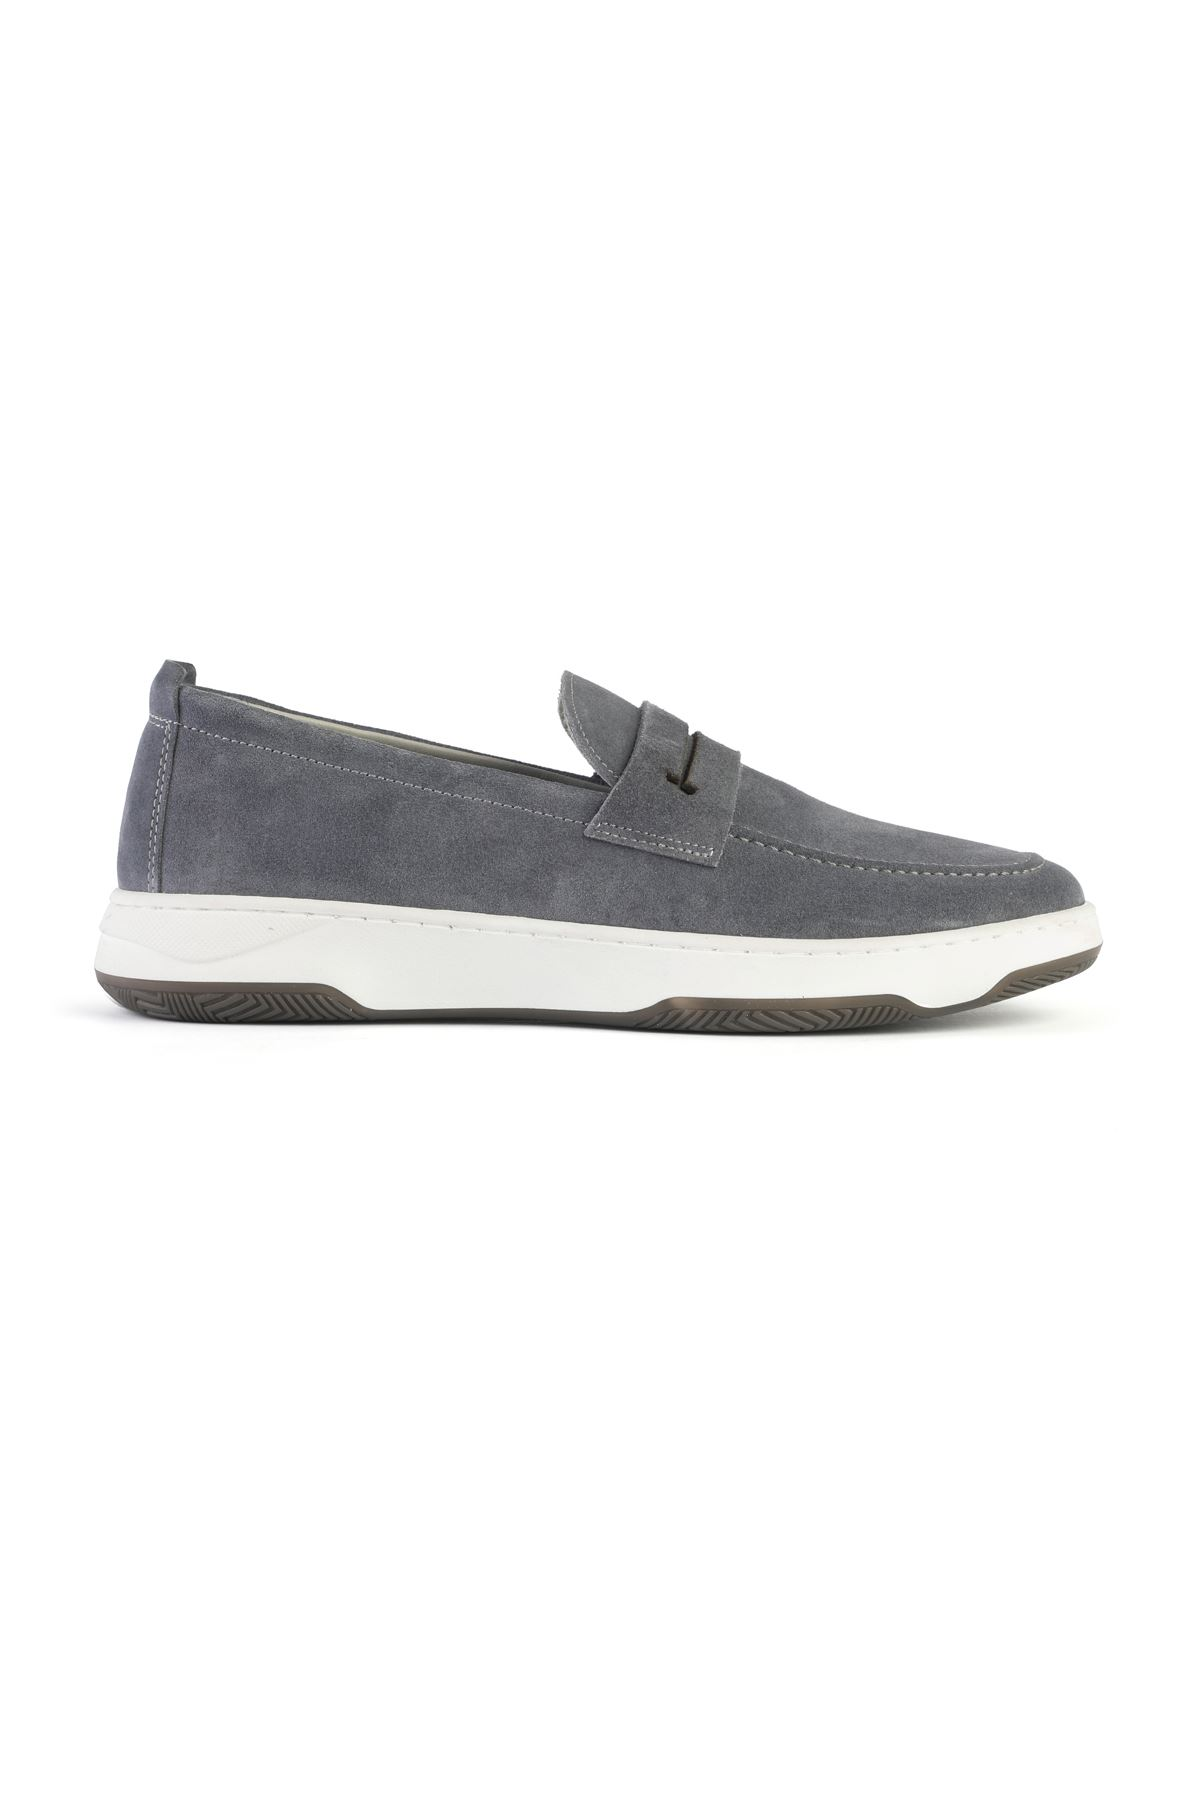 Libero 3229 Gray Loafer Shoes